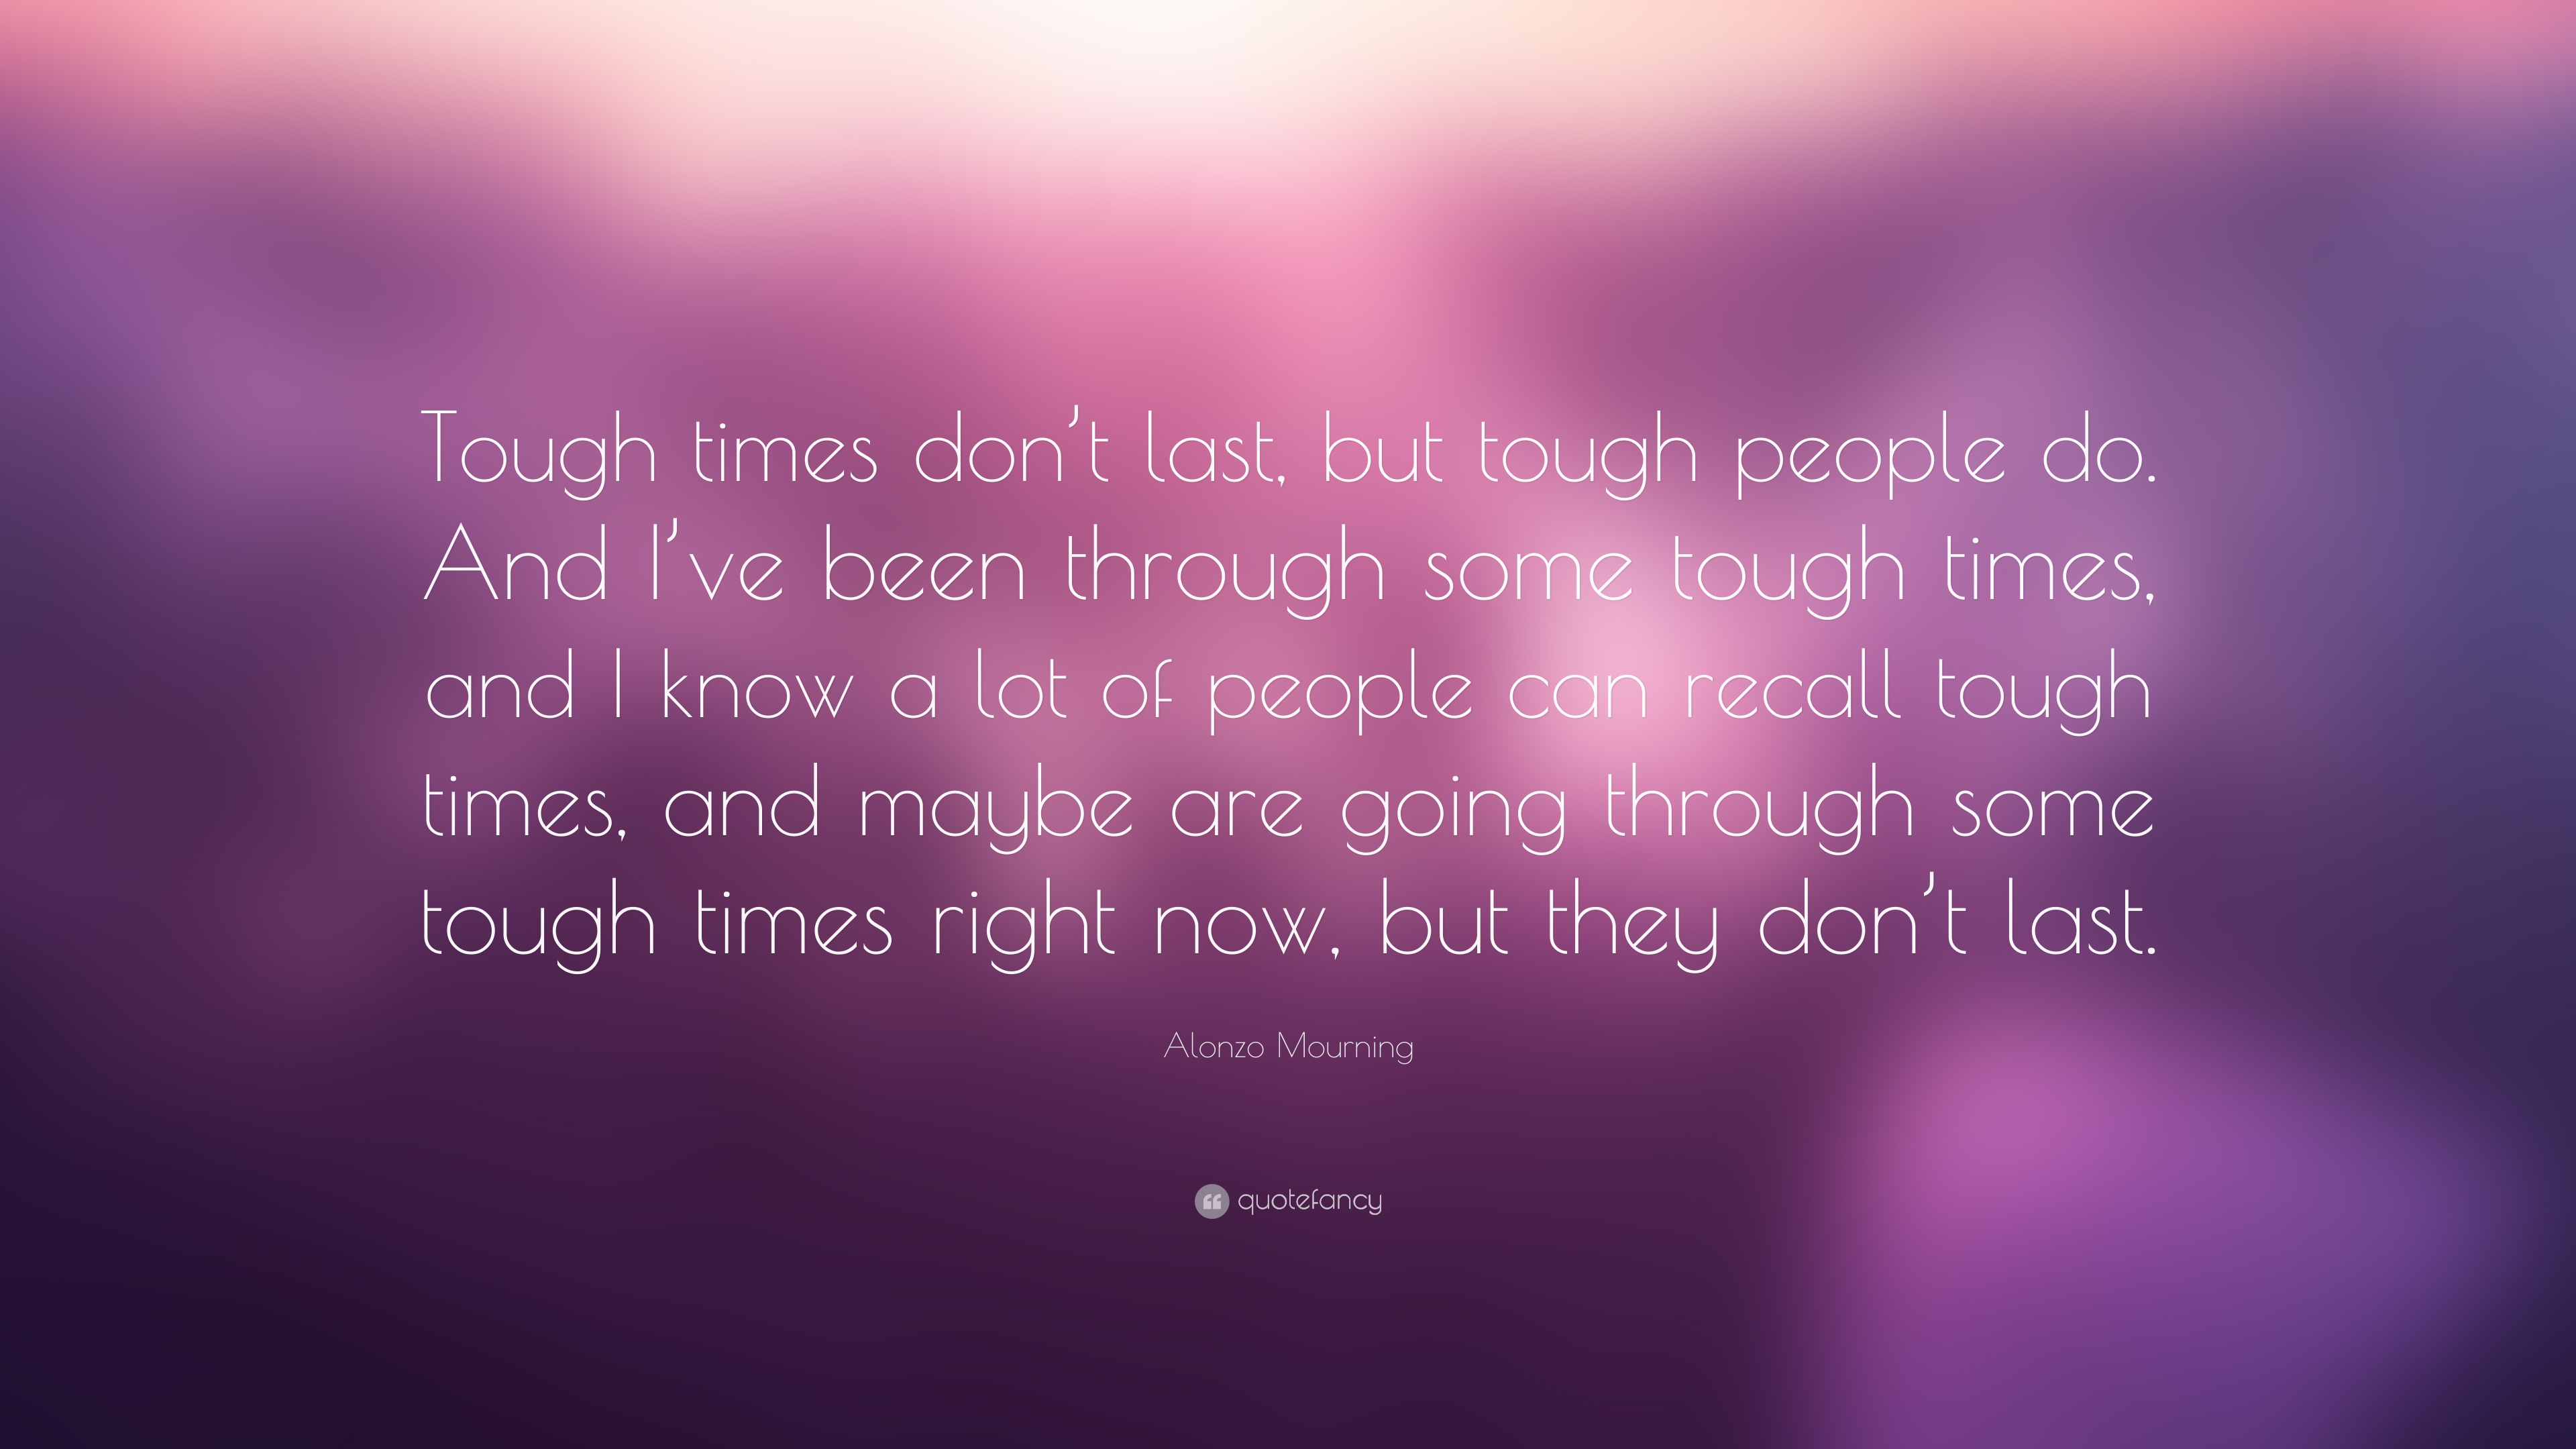 Mourning Quotes Alonzo Mourning Quotes 25 Wallpapers  Quotefancy